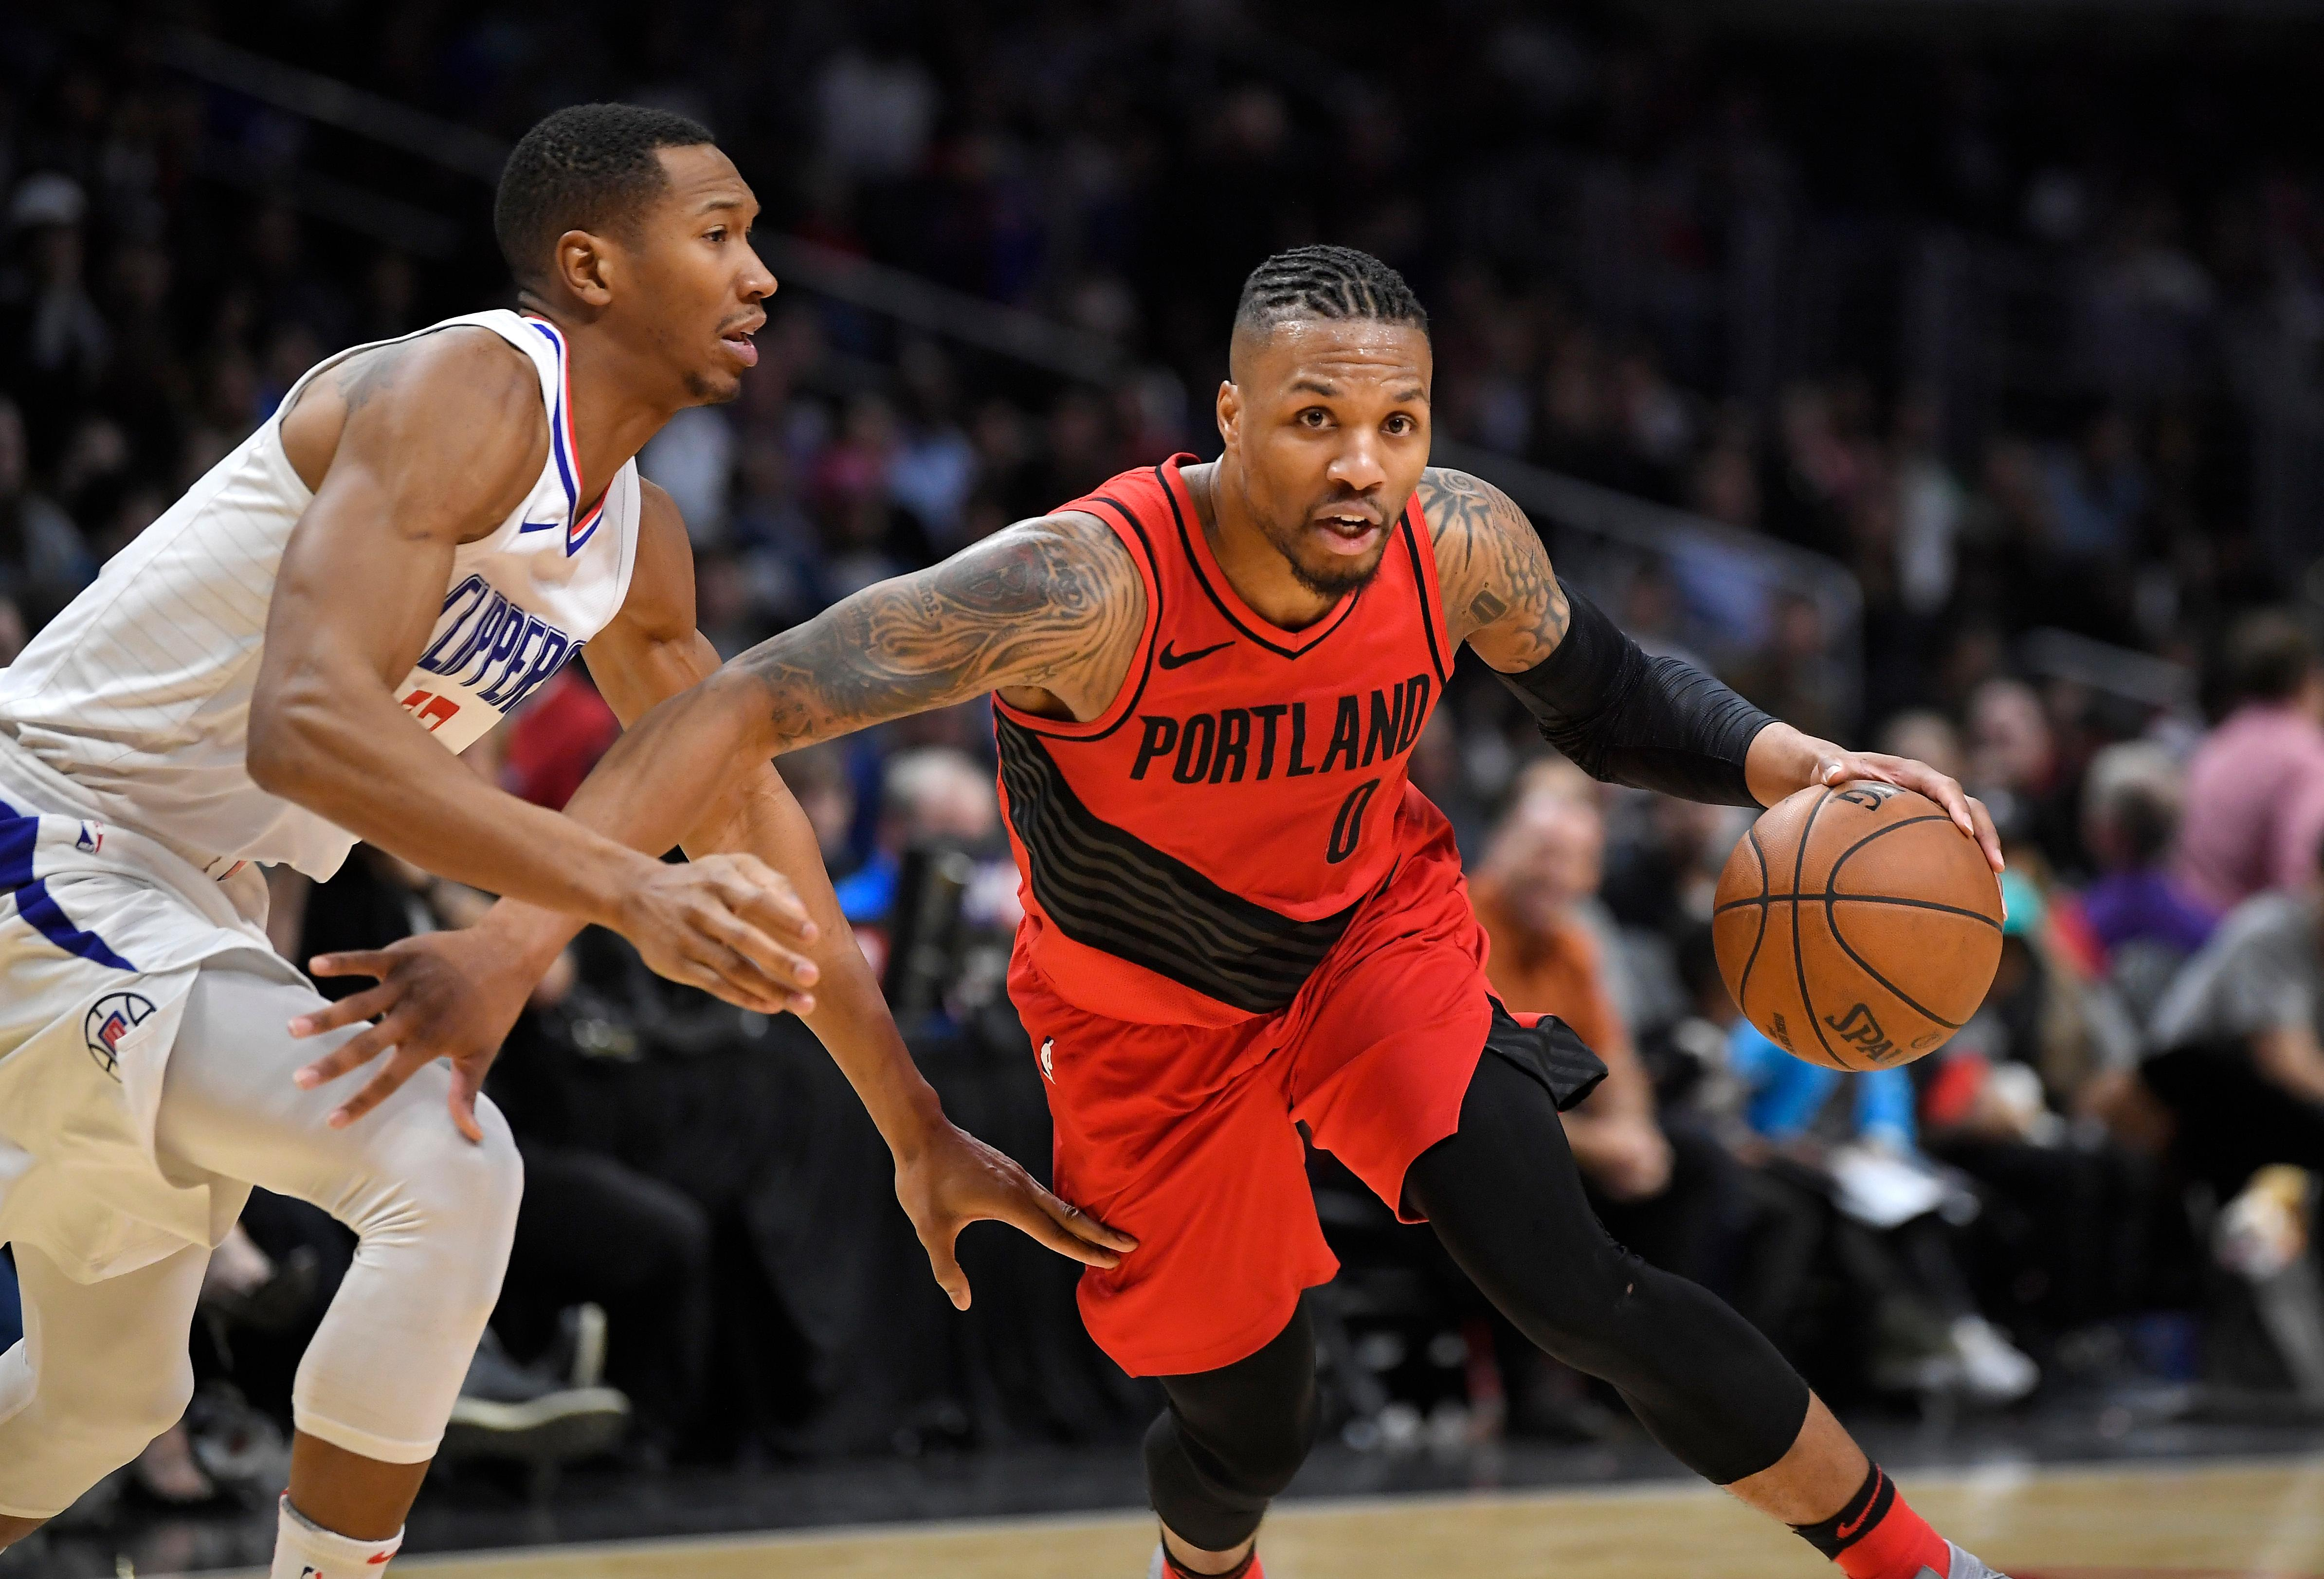 Portland Trail Blazers guard Damian Lillard, right, dribbles past Los Angeles Clippers forward Wesley Johnson during the second half of an NBA basketball game Tuesday, Jan. 30, 2018, in Los Angeles. The Trail Blazers won 104-96. (AP Photo/Mark J. Terrill)